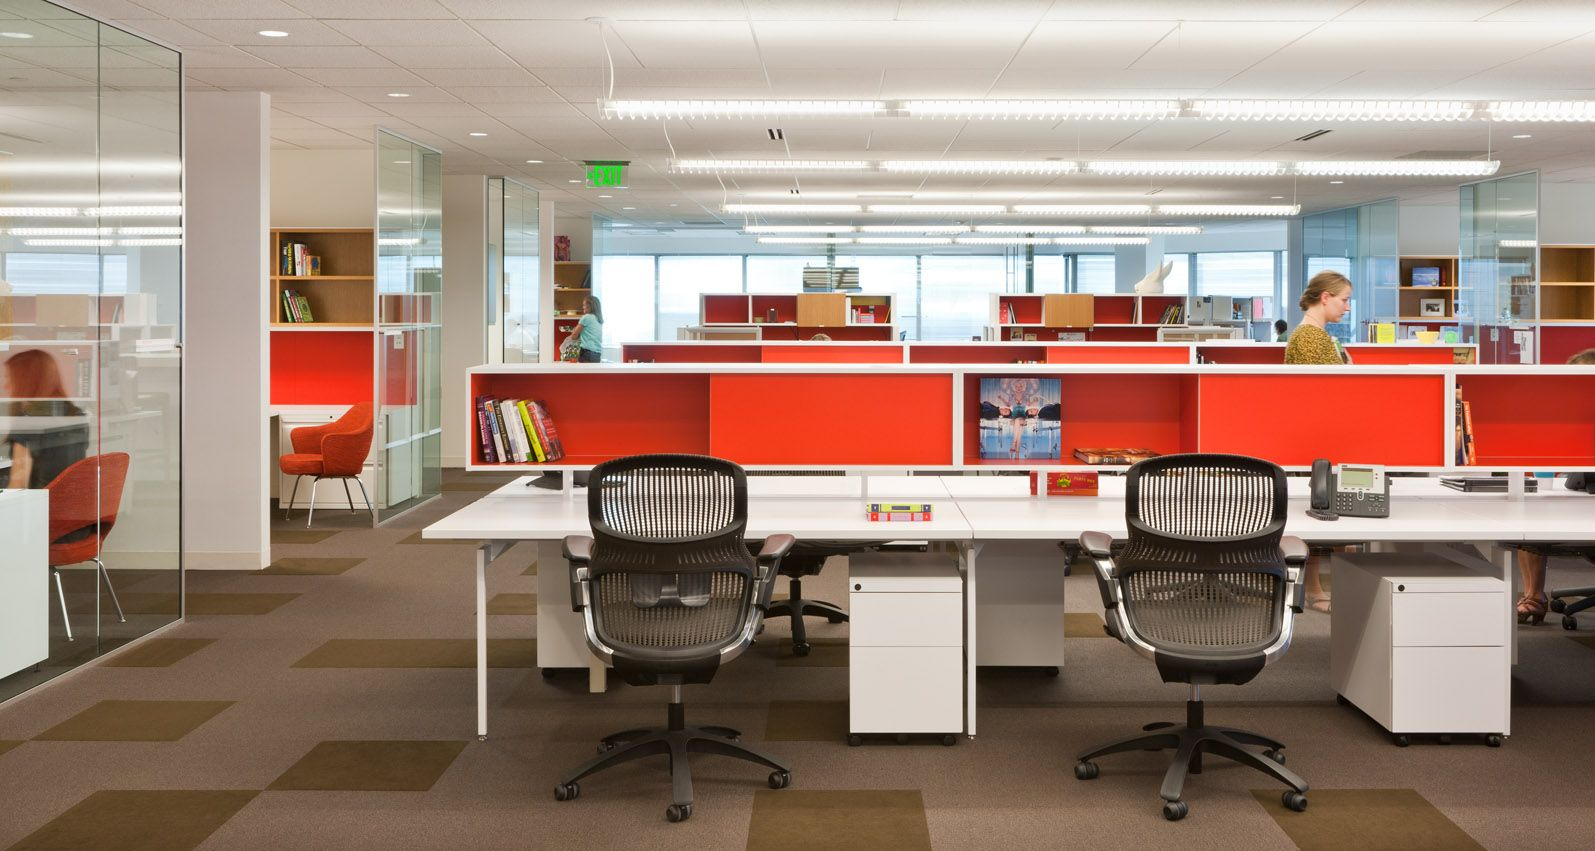 Knoll Antenna Offices Storage at desks Knoll Pinterest Desks